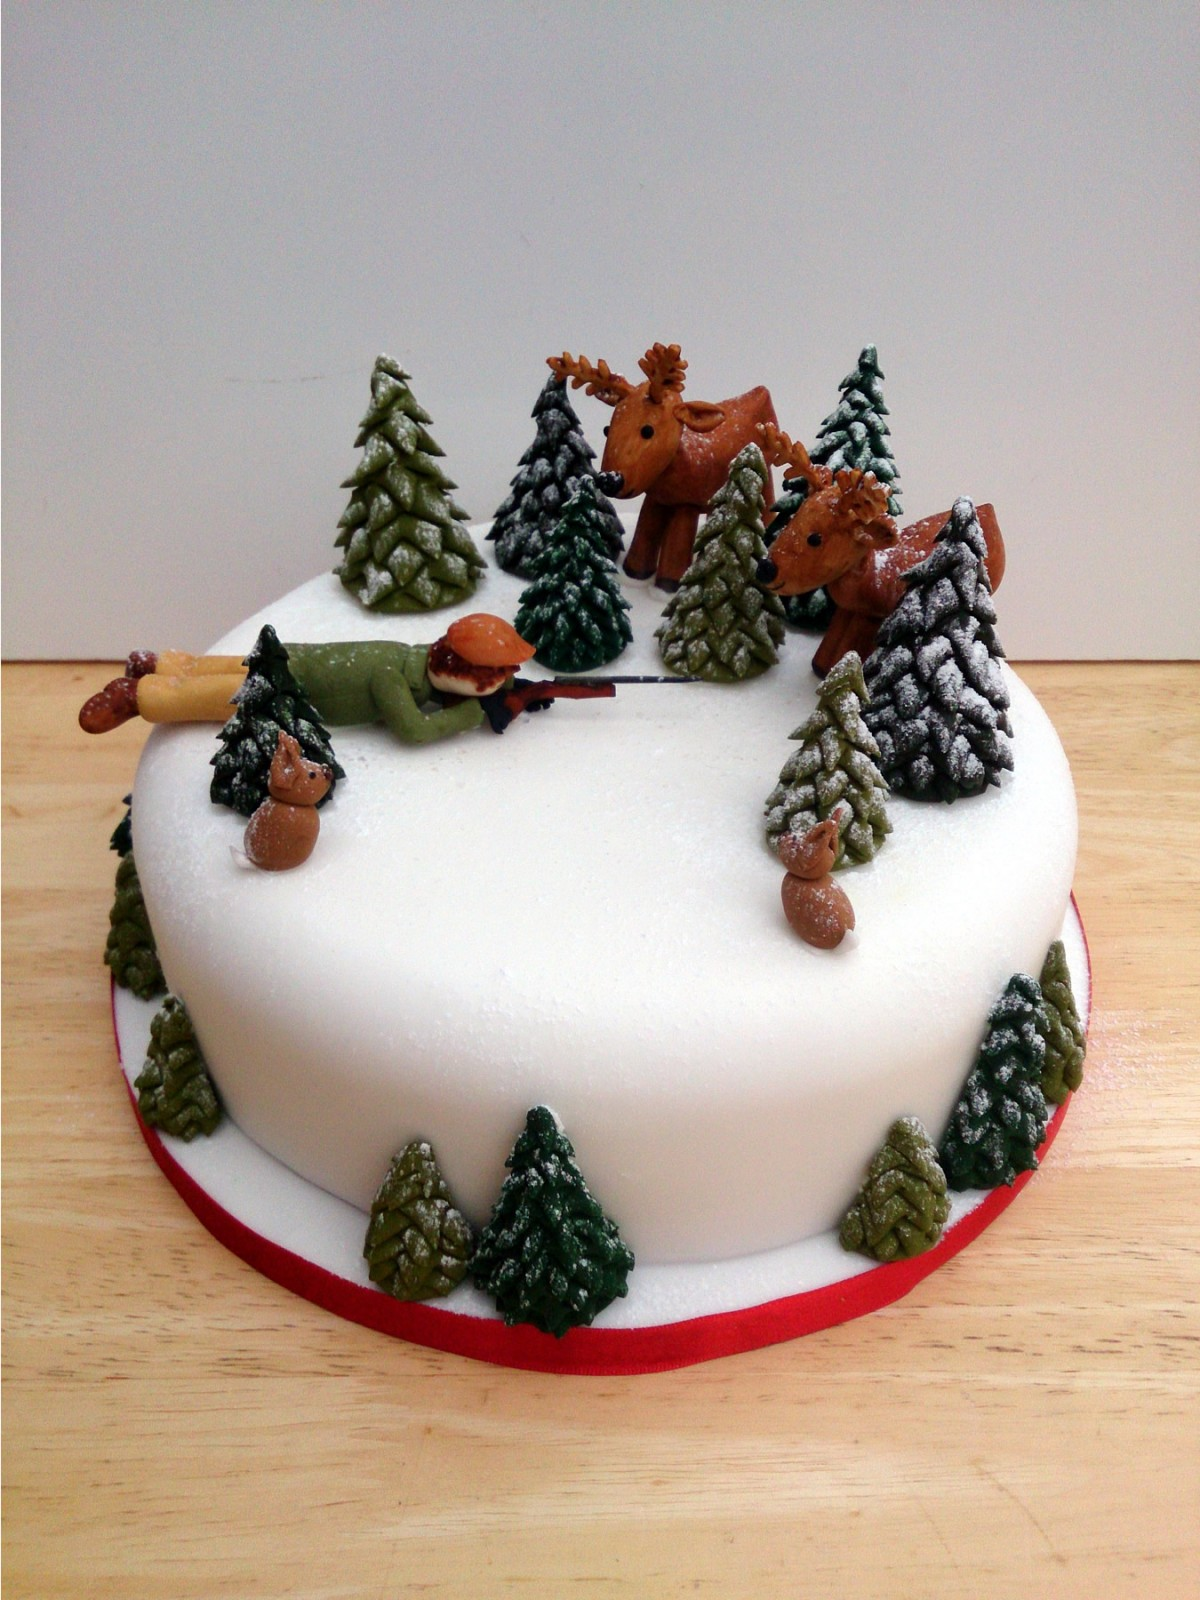 Novelty Christmas Cake Images : Shooting Theme Novelty Christmas Cake   Susie s Cakes